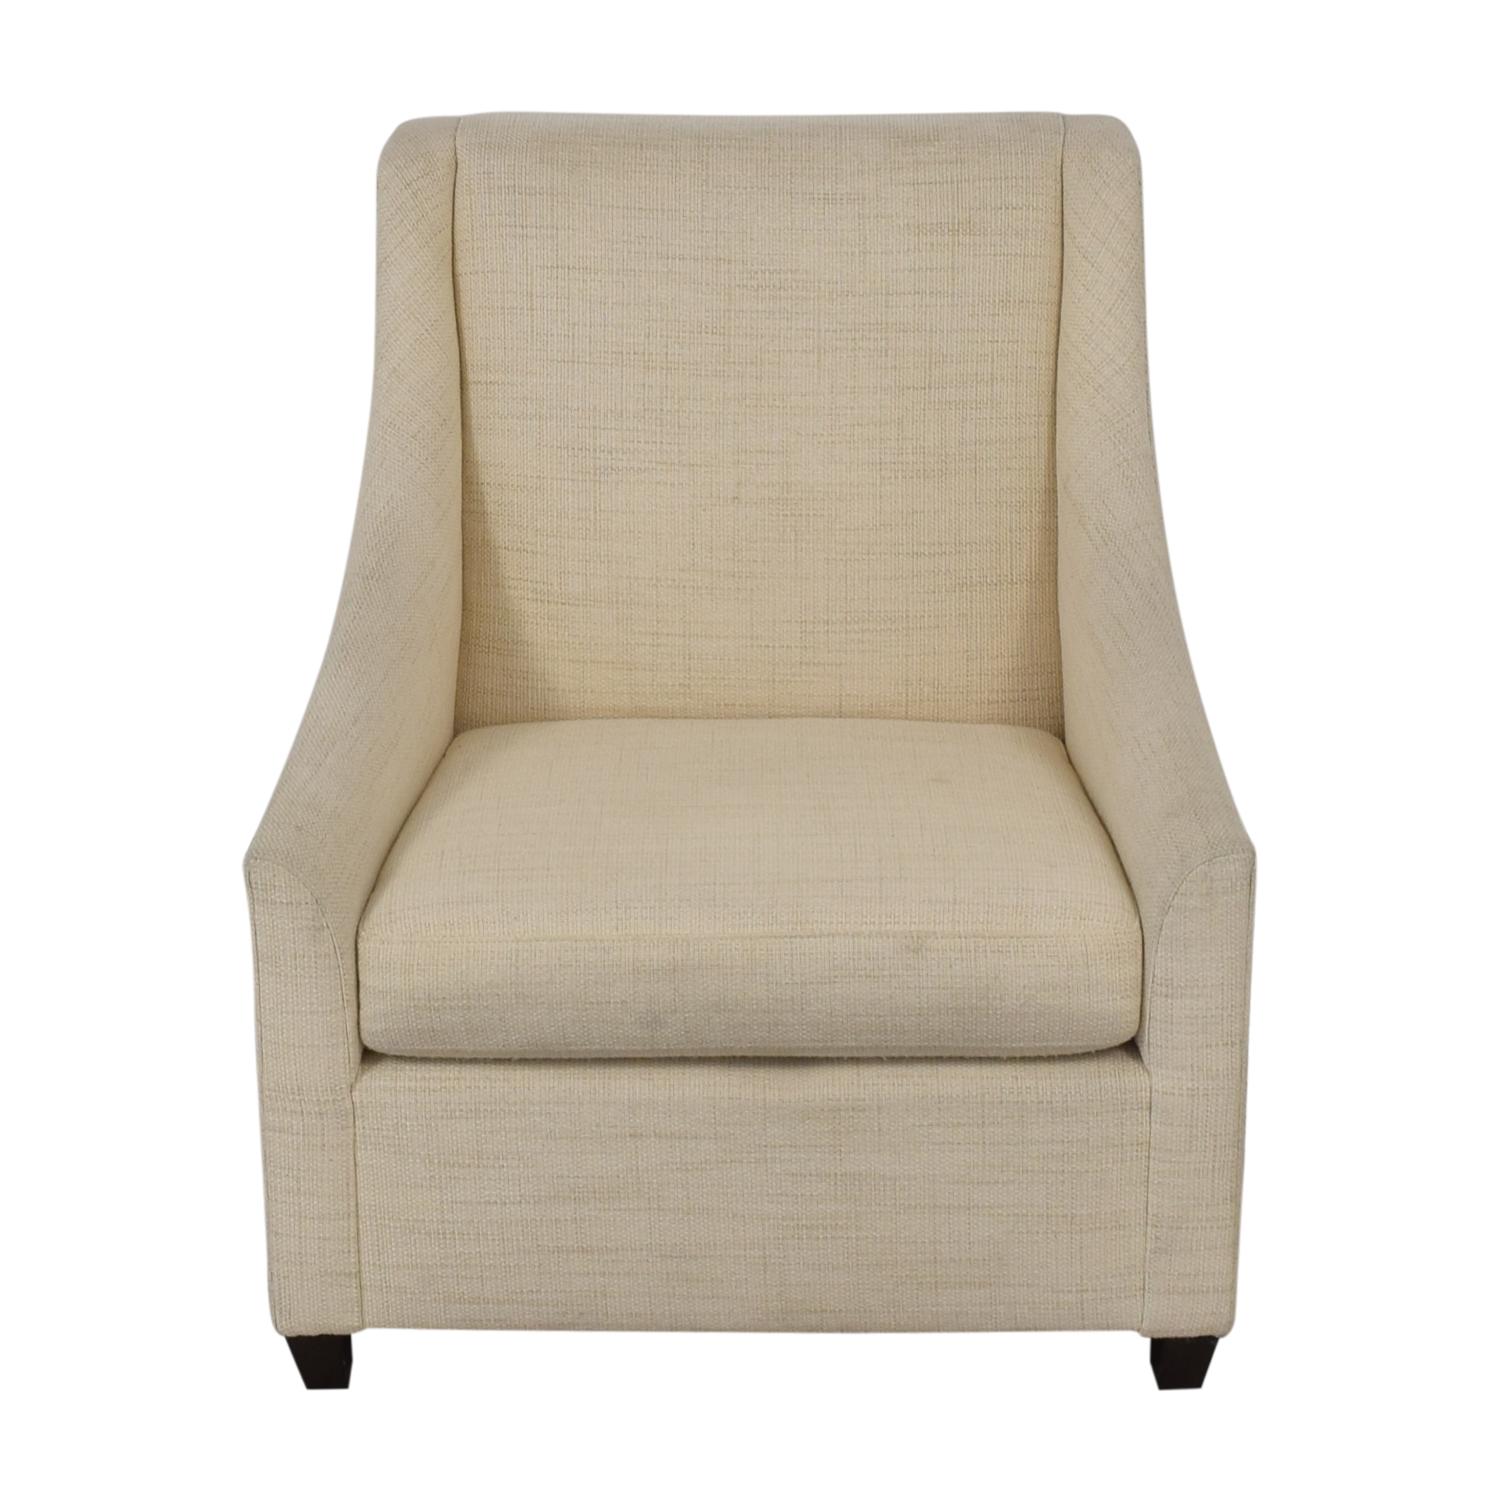 74 Off West Elm West Elm Sweep Accent Chair Chairs